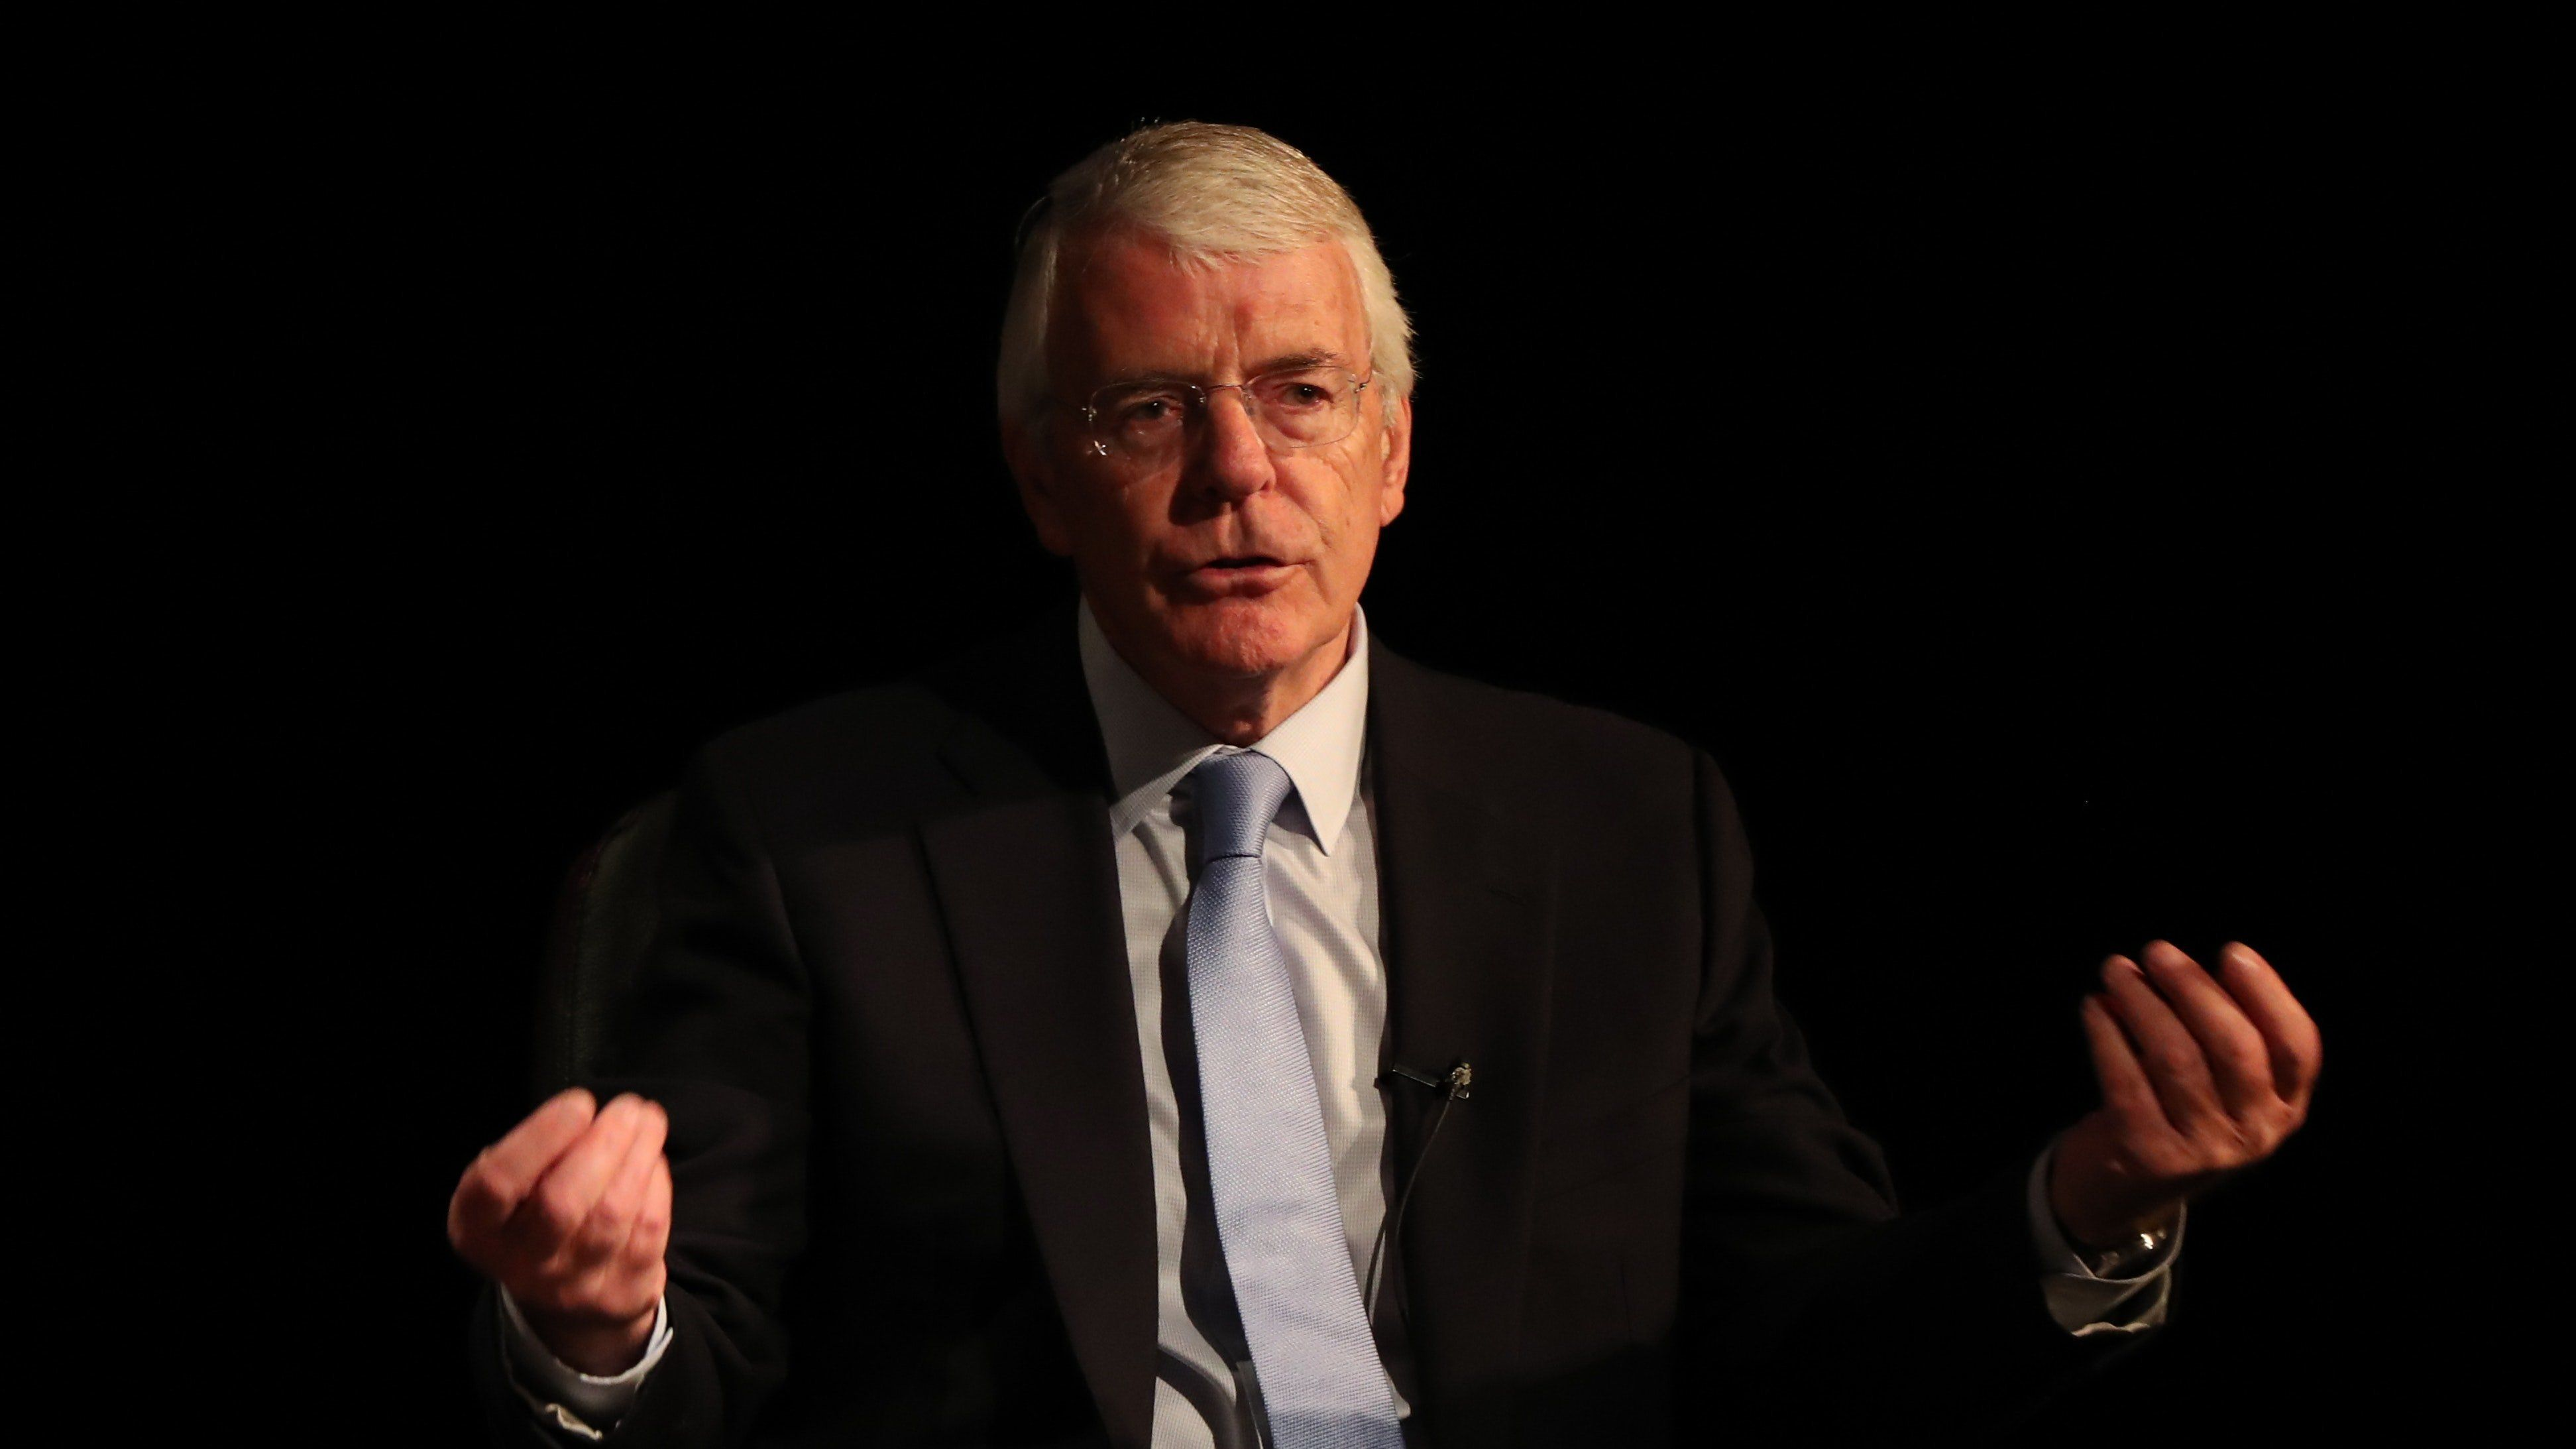 Sir John Major Brands Leave Campaign A 'Fantasy Case' In Call For Second Brexit